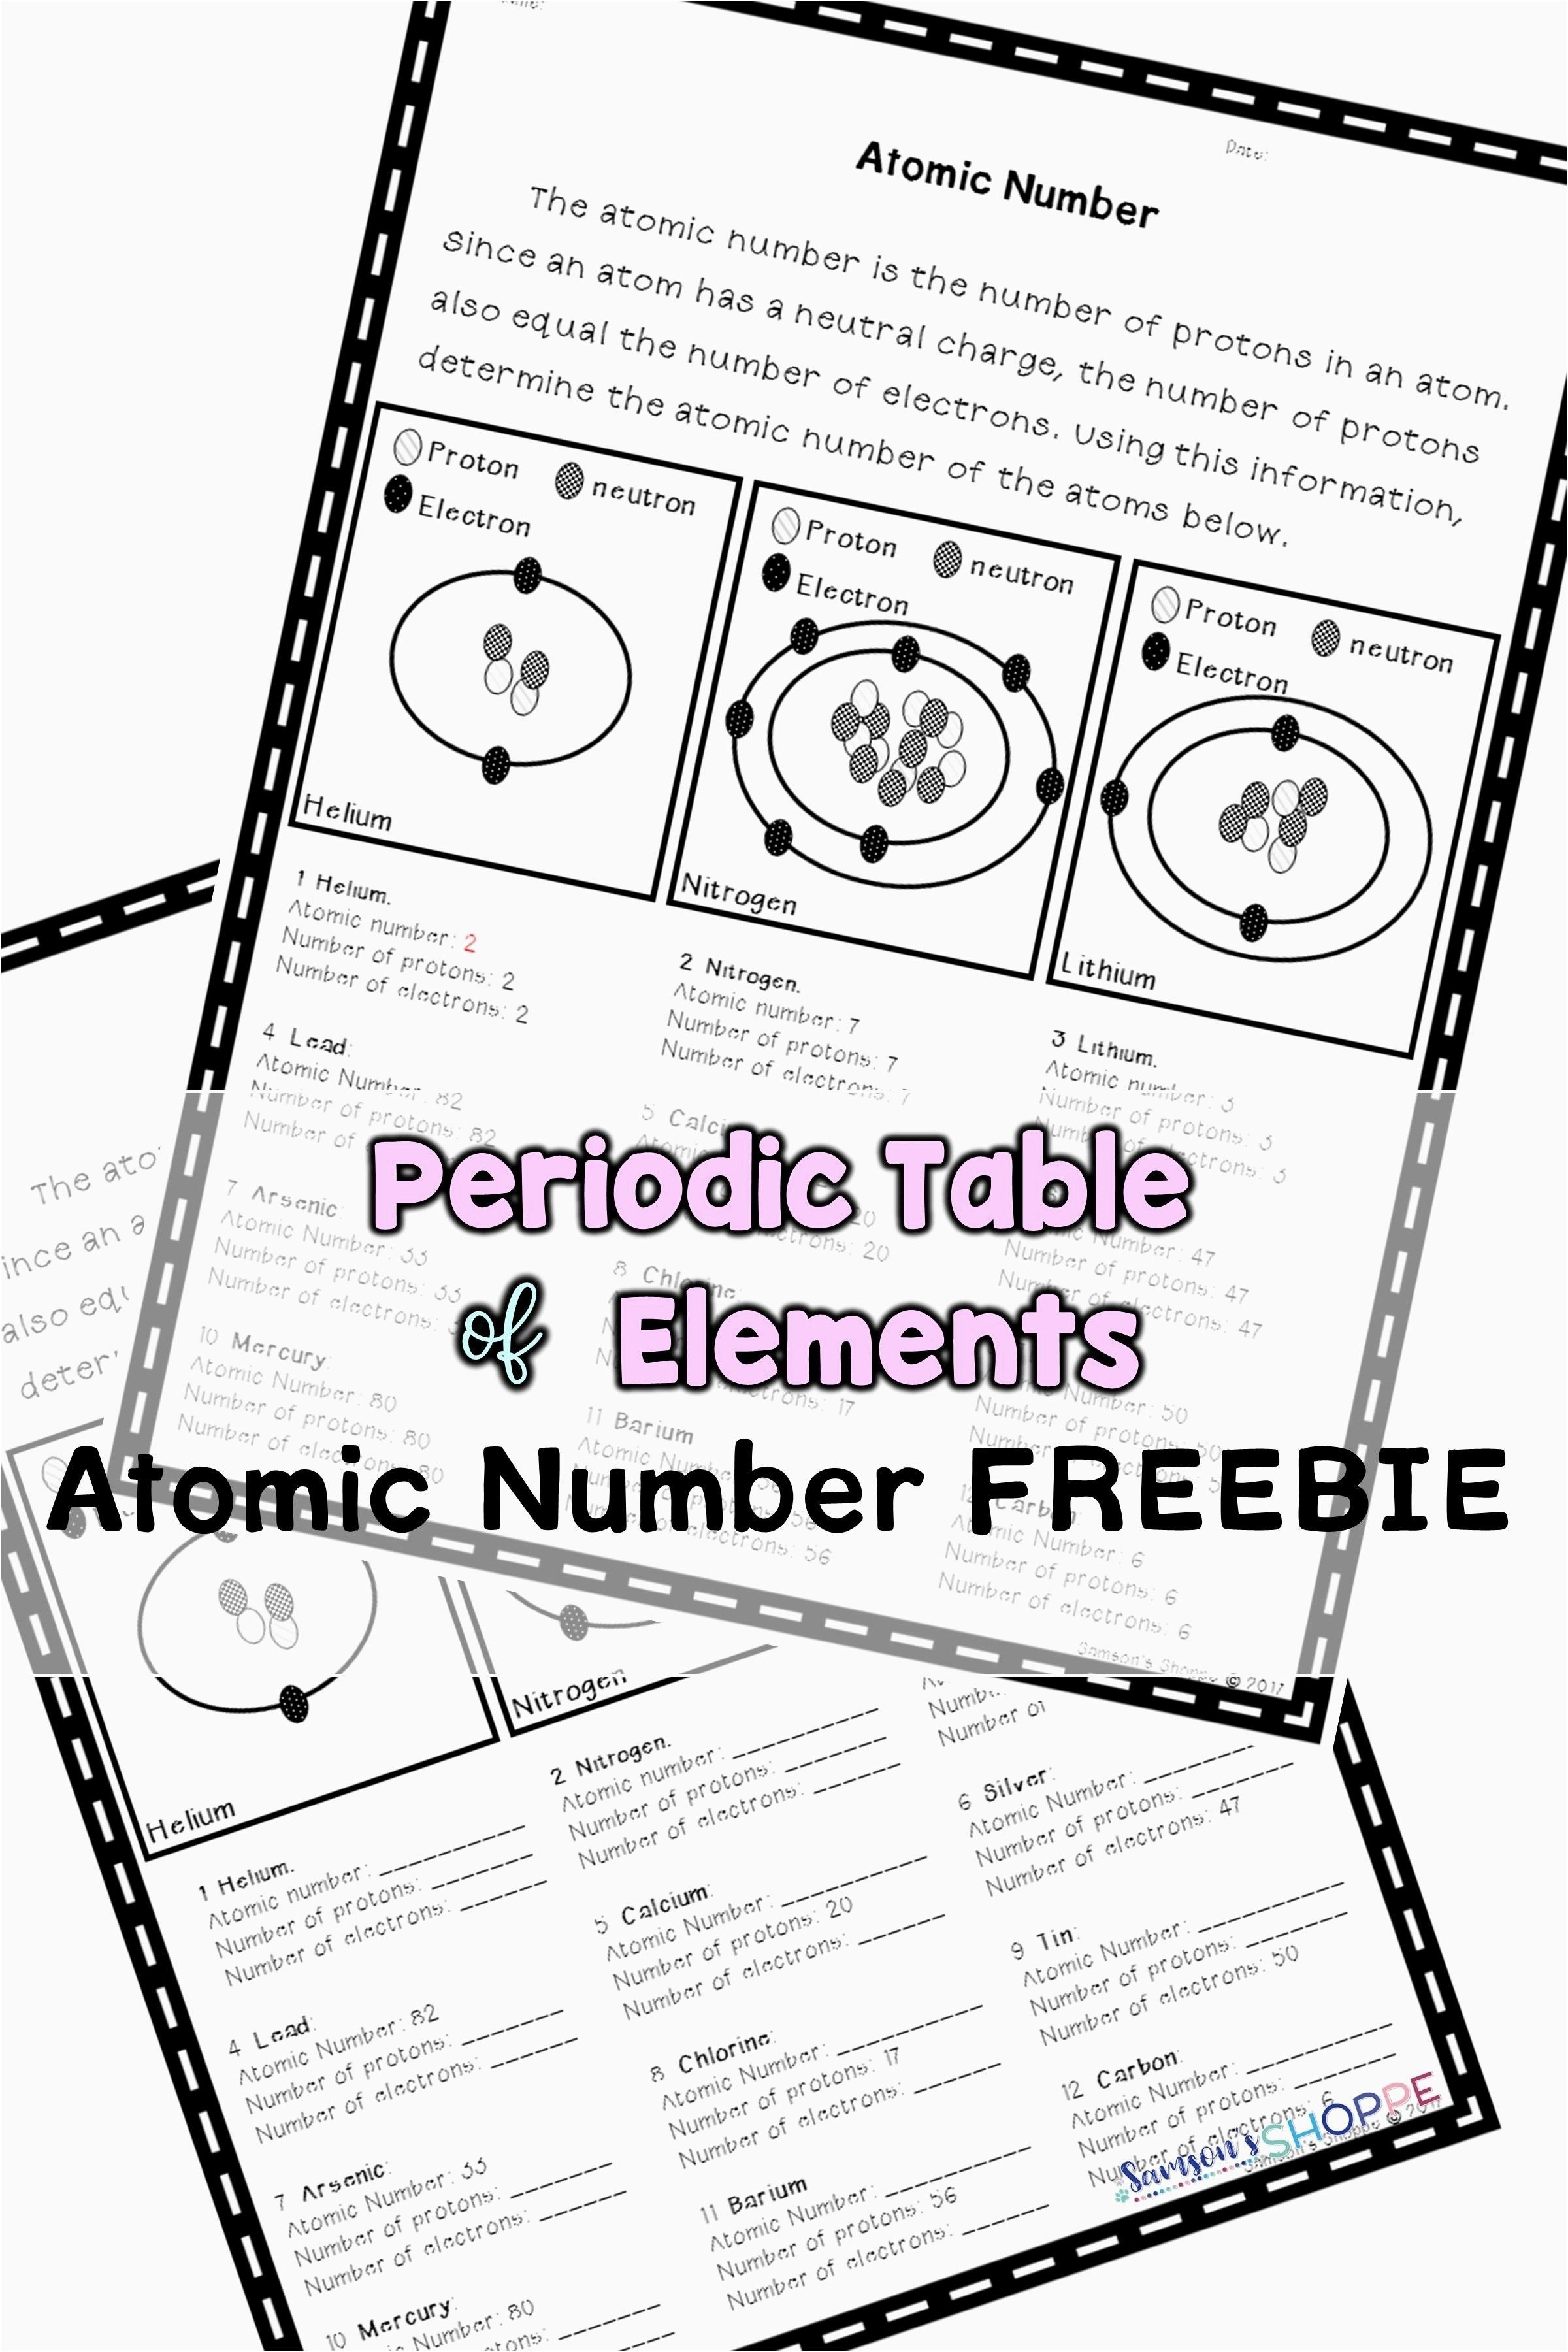 You Can Download Inspirational Periodic Table Trends Activity Pdf At Here Https Zavalen Info 2018 06 24 Per Number Worksheets Review Activities Atomic Number